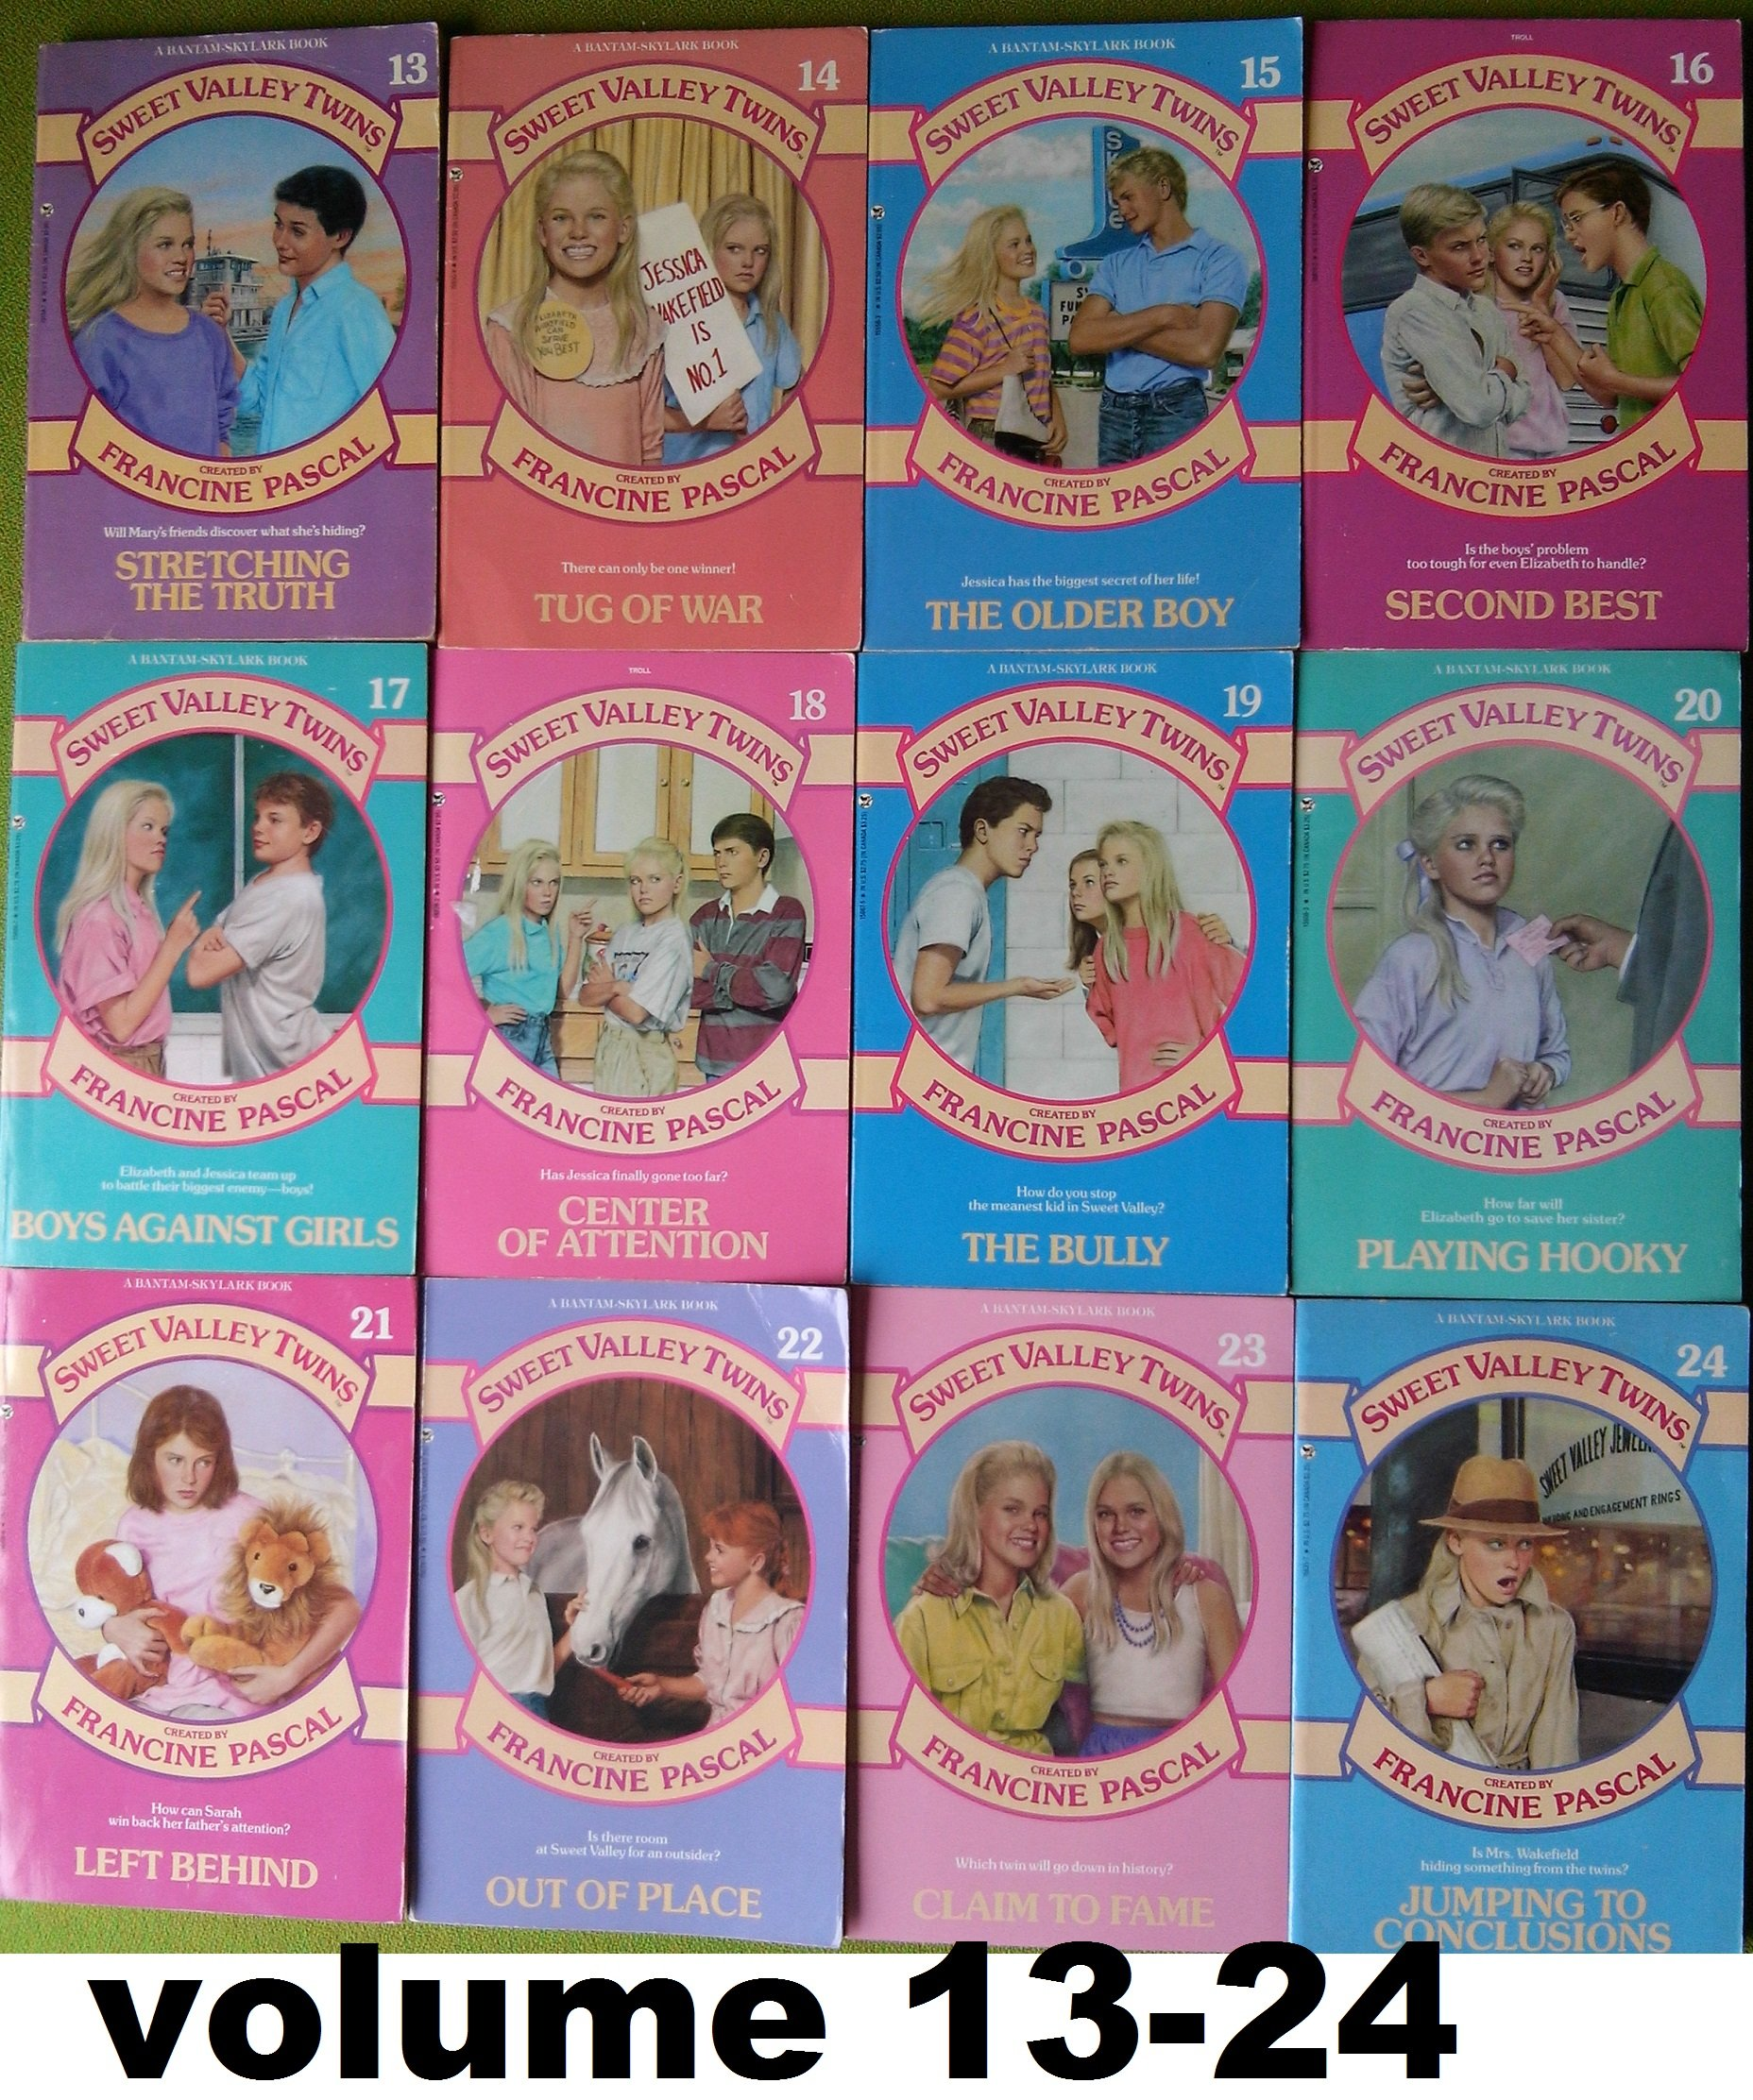 Francine Pascal 1980s Sweet Valley Twins Books Sold Separately 27 Volumes